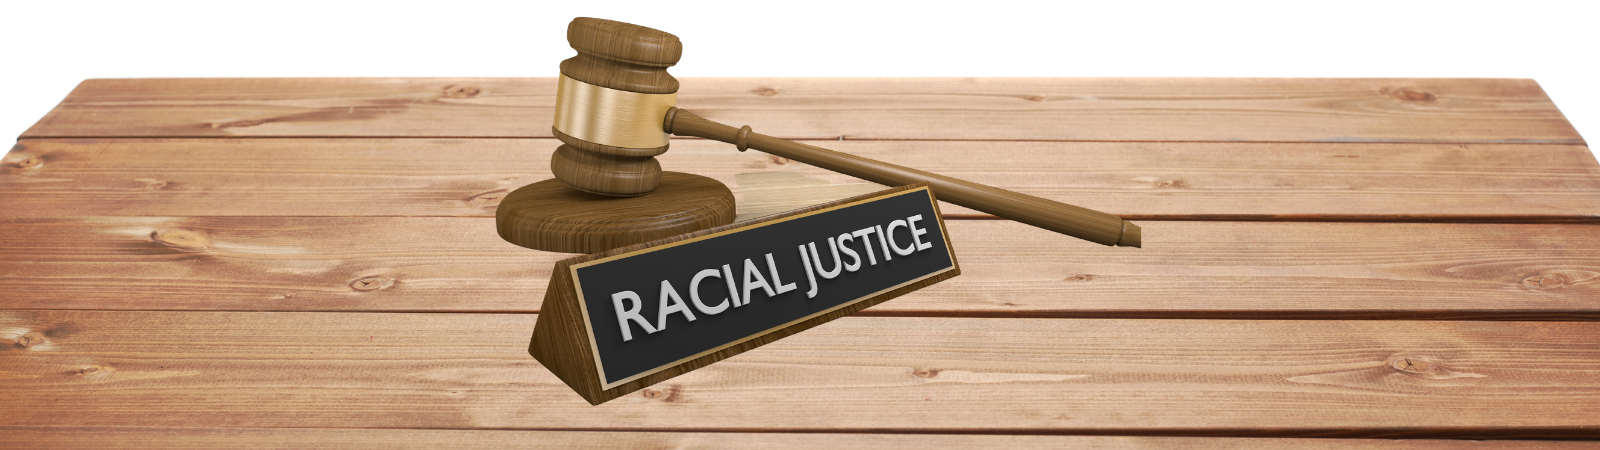 racial justice banner image